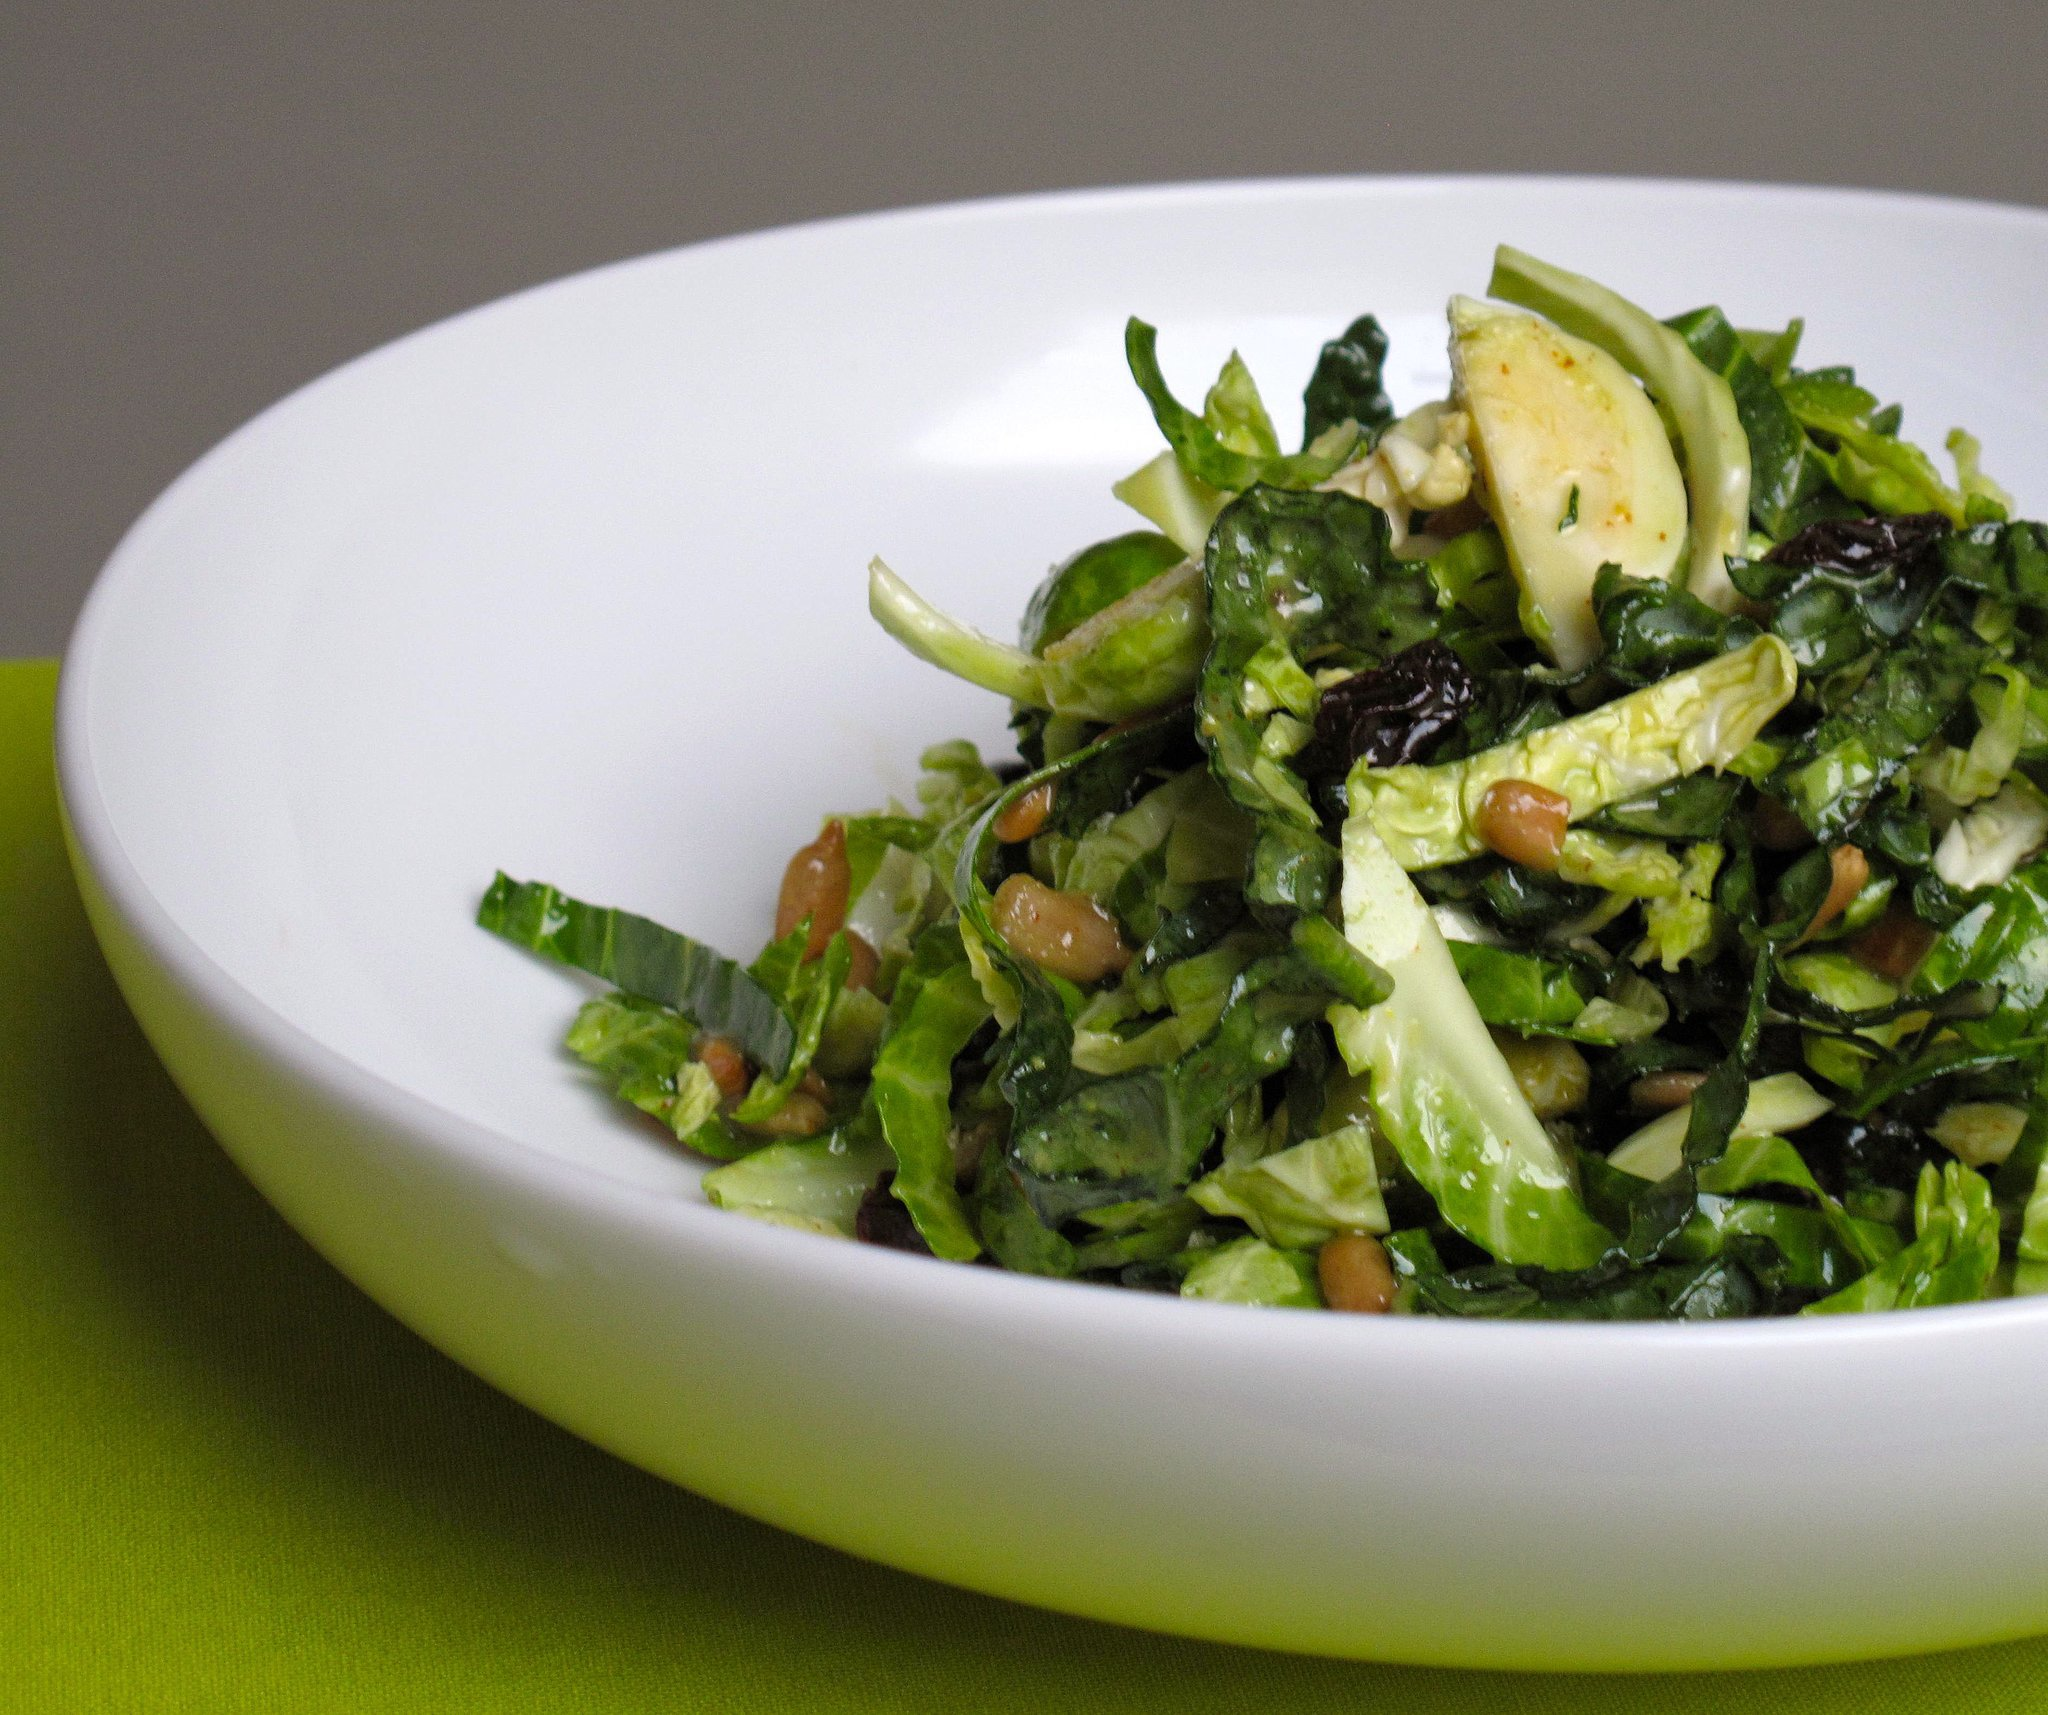 Shredded Brussels Sprouts and Kale With Sunflower Seeds